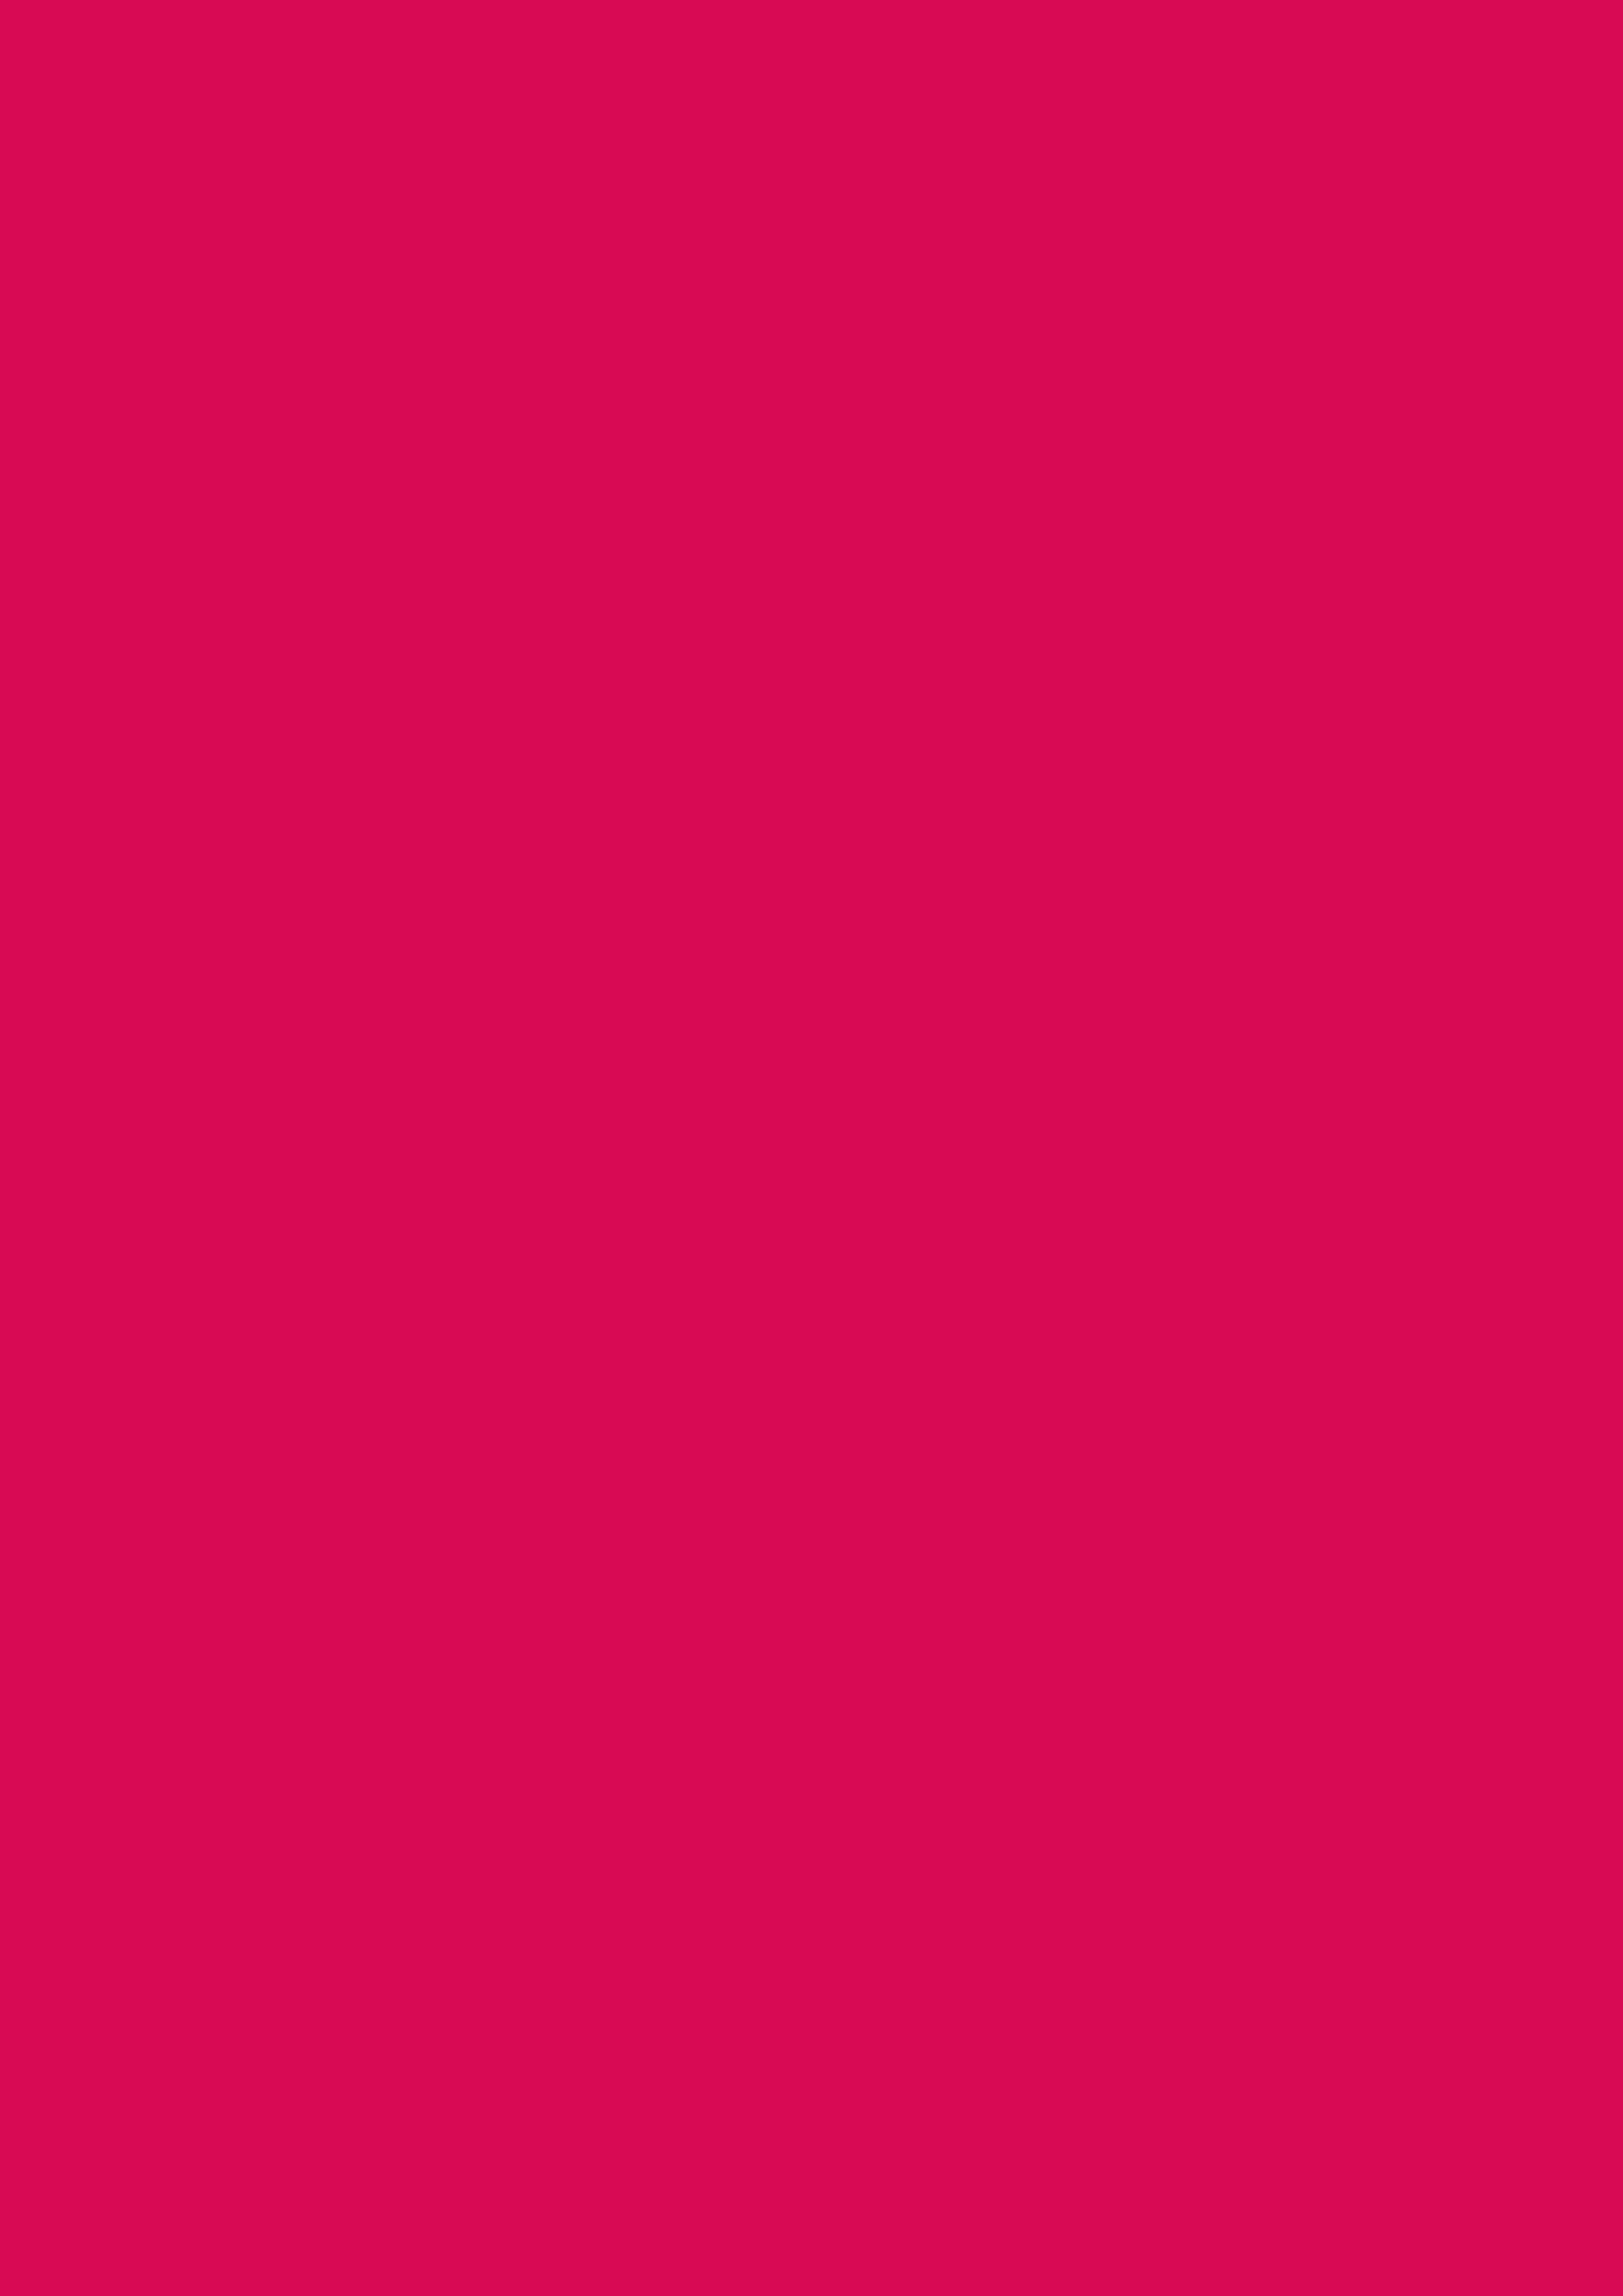 2480x3508 Debian Red Solid Color Background